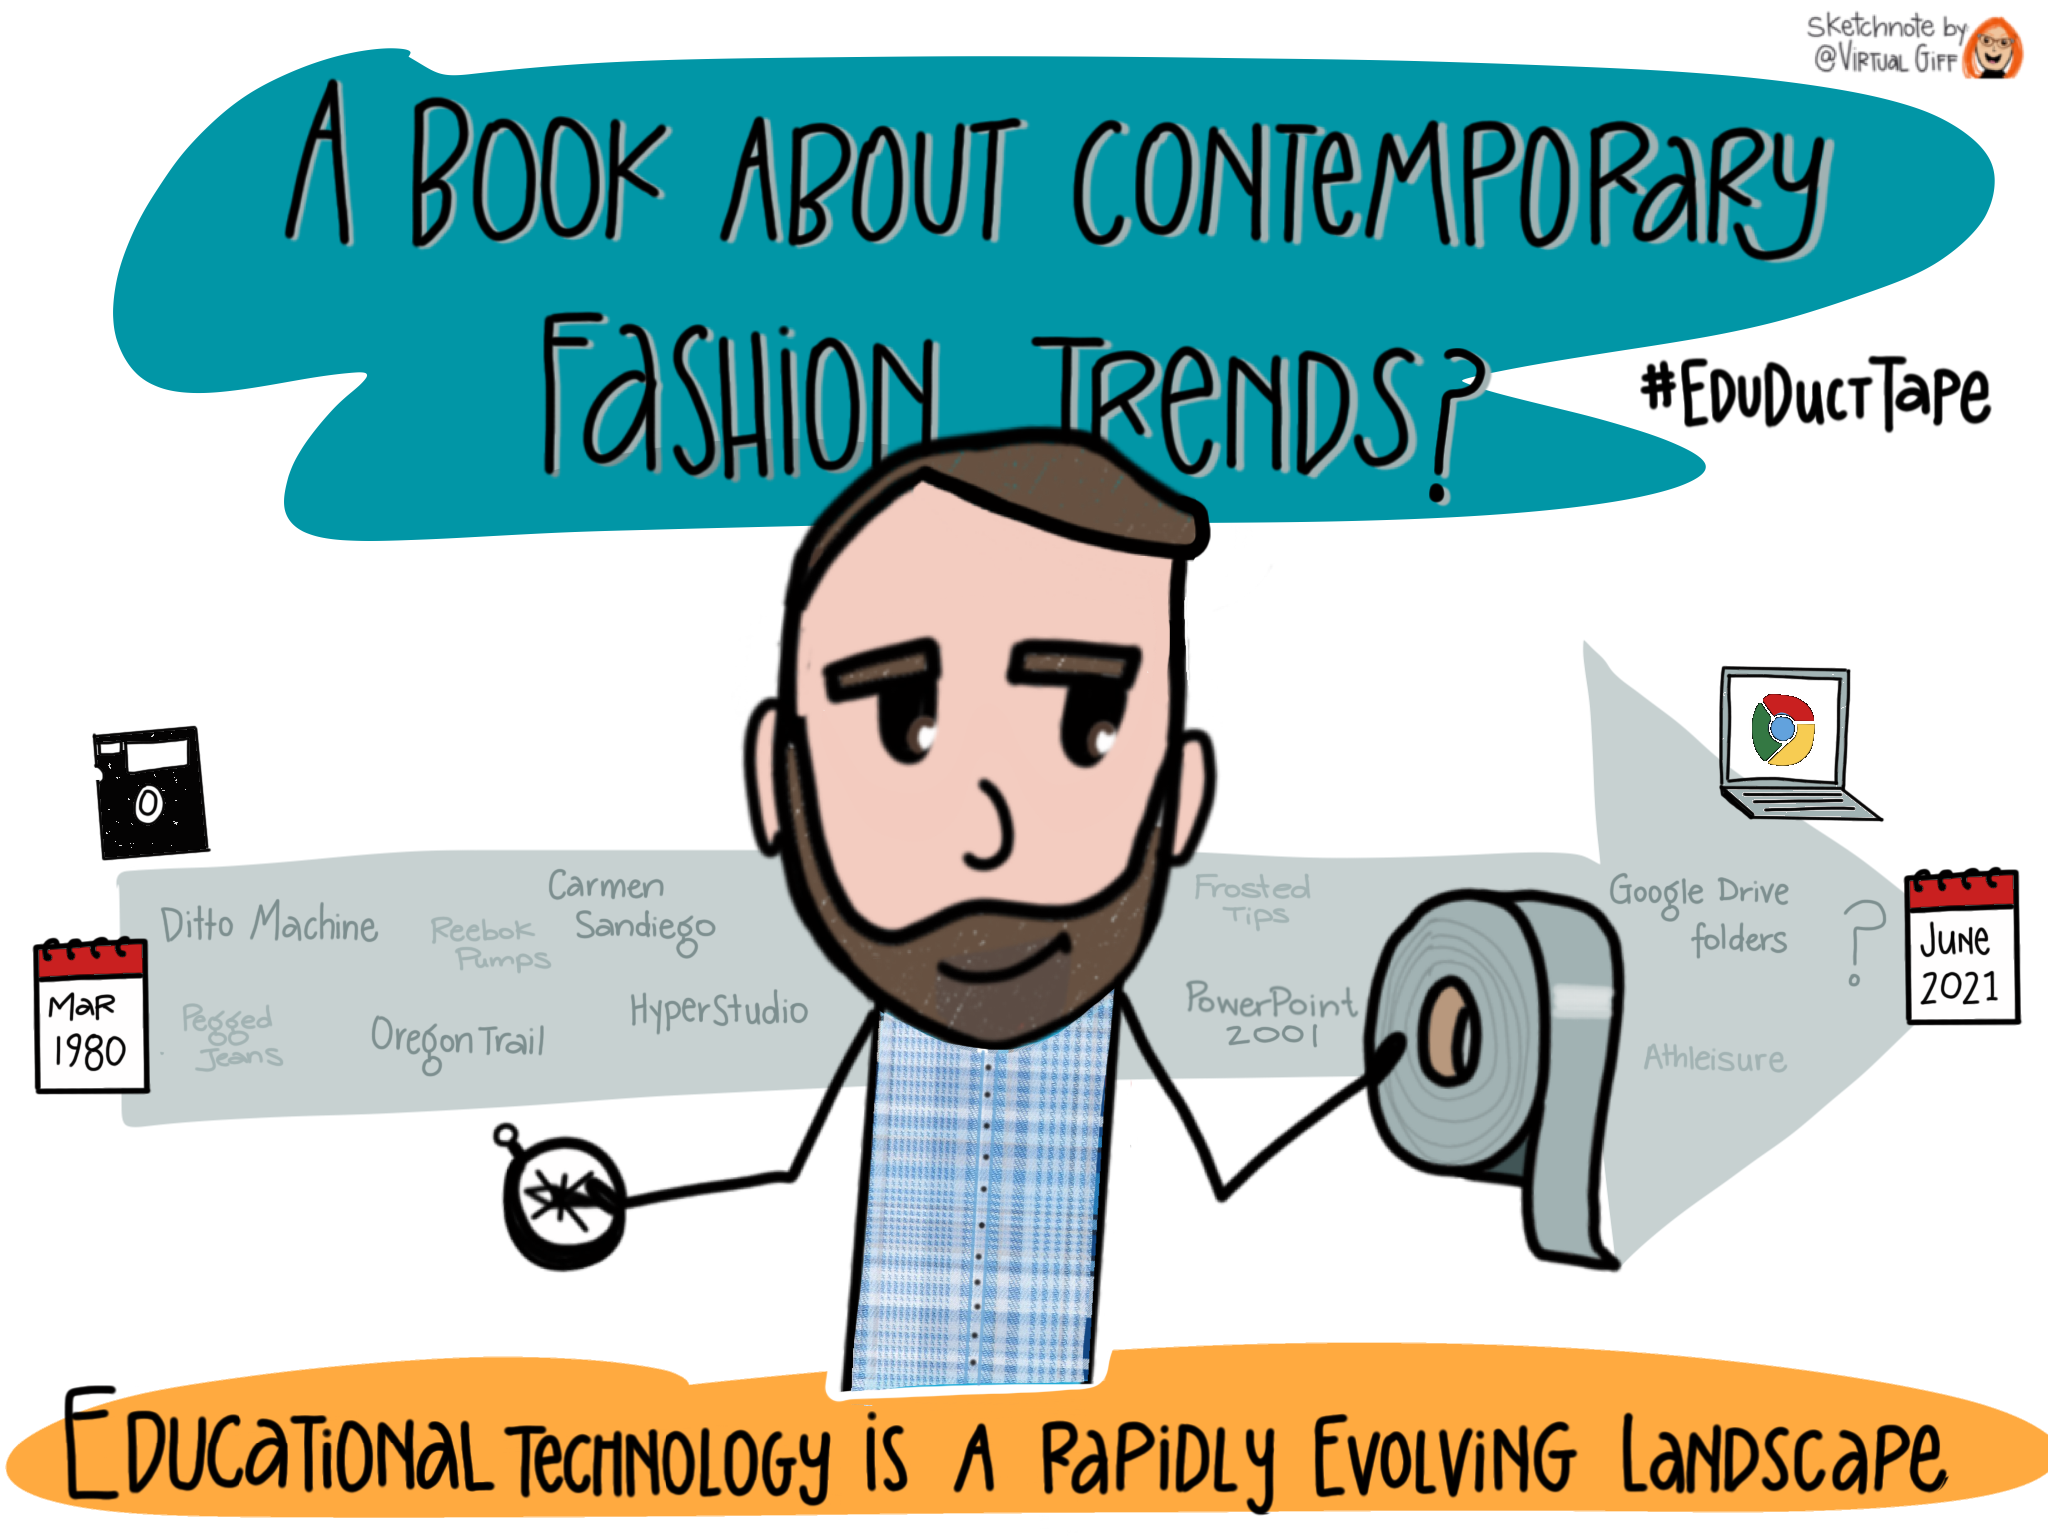 This Sketchnote features an image of Jake holding a roll of duct tape and a compass along with the text: A book about Contemporary Fashion Trends? Educational Technology is a Rapidly evolving landscape. Behind Jake is a timeline showing various technologies (floppy disks, Carmen Sandiego, Oregon Trail, Google Drive) and fashion trends (Reebok Pumps, pegged jeans, frosted tips).